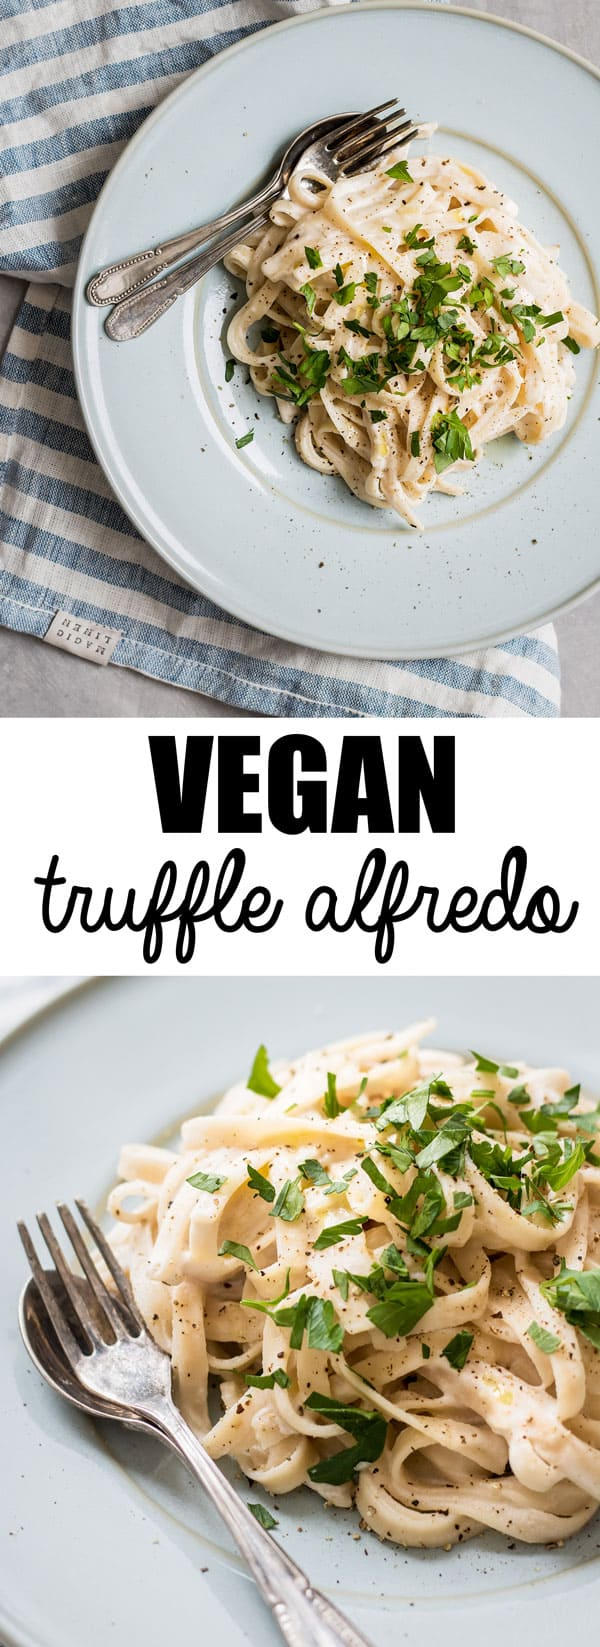 This vegan truffle alfredo is easy to make and features cashews as the base of the sauce!